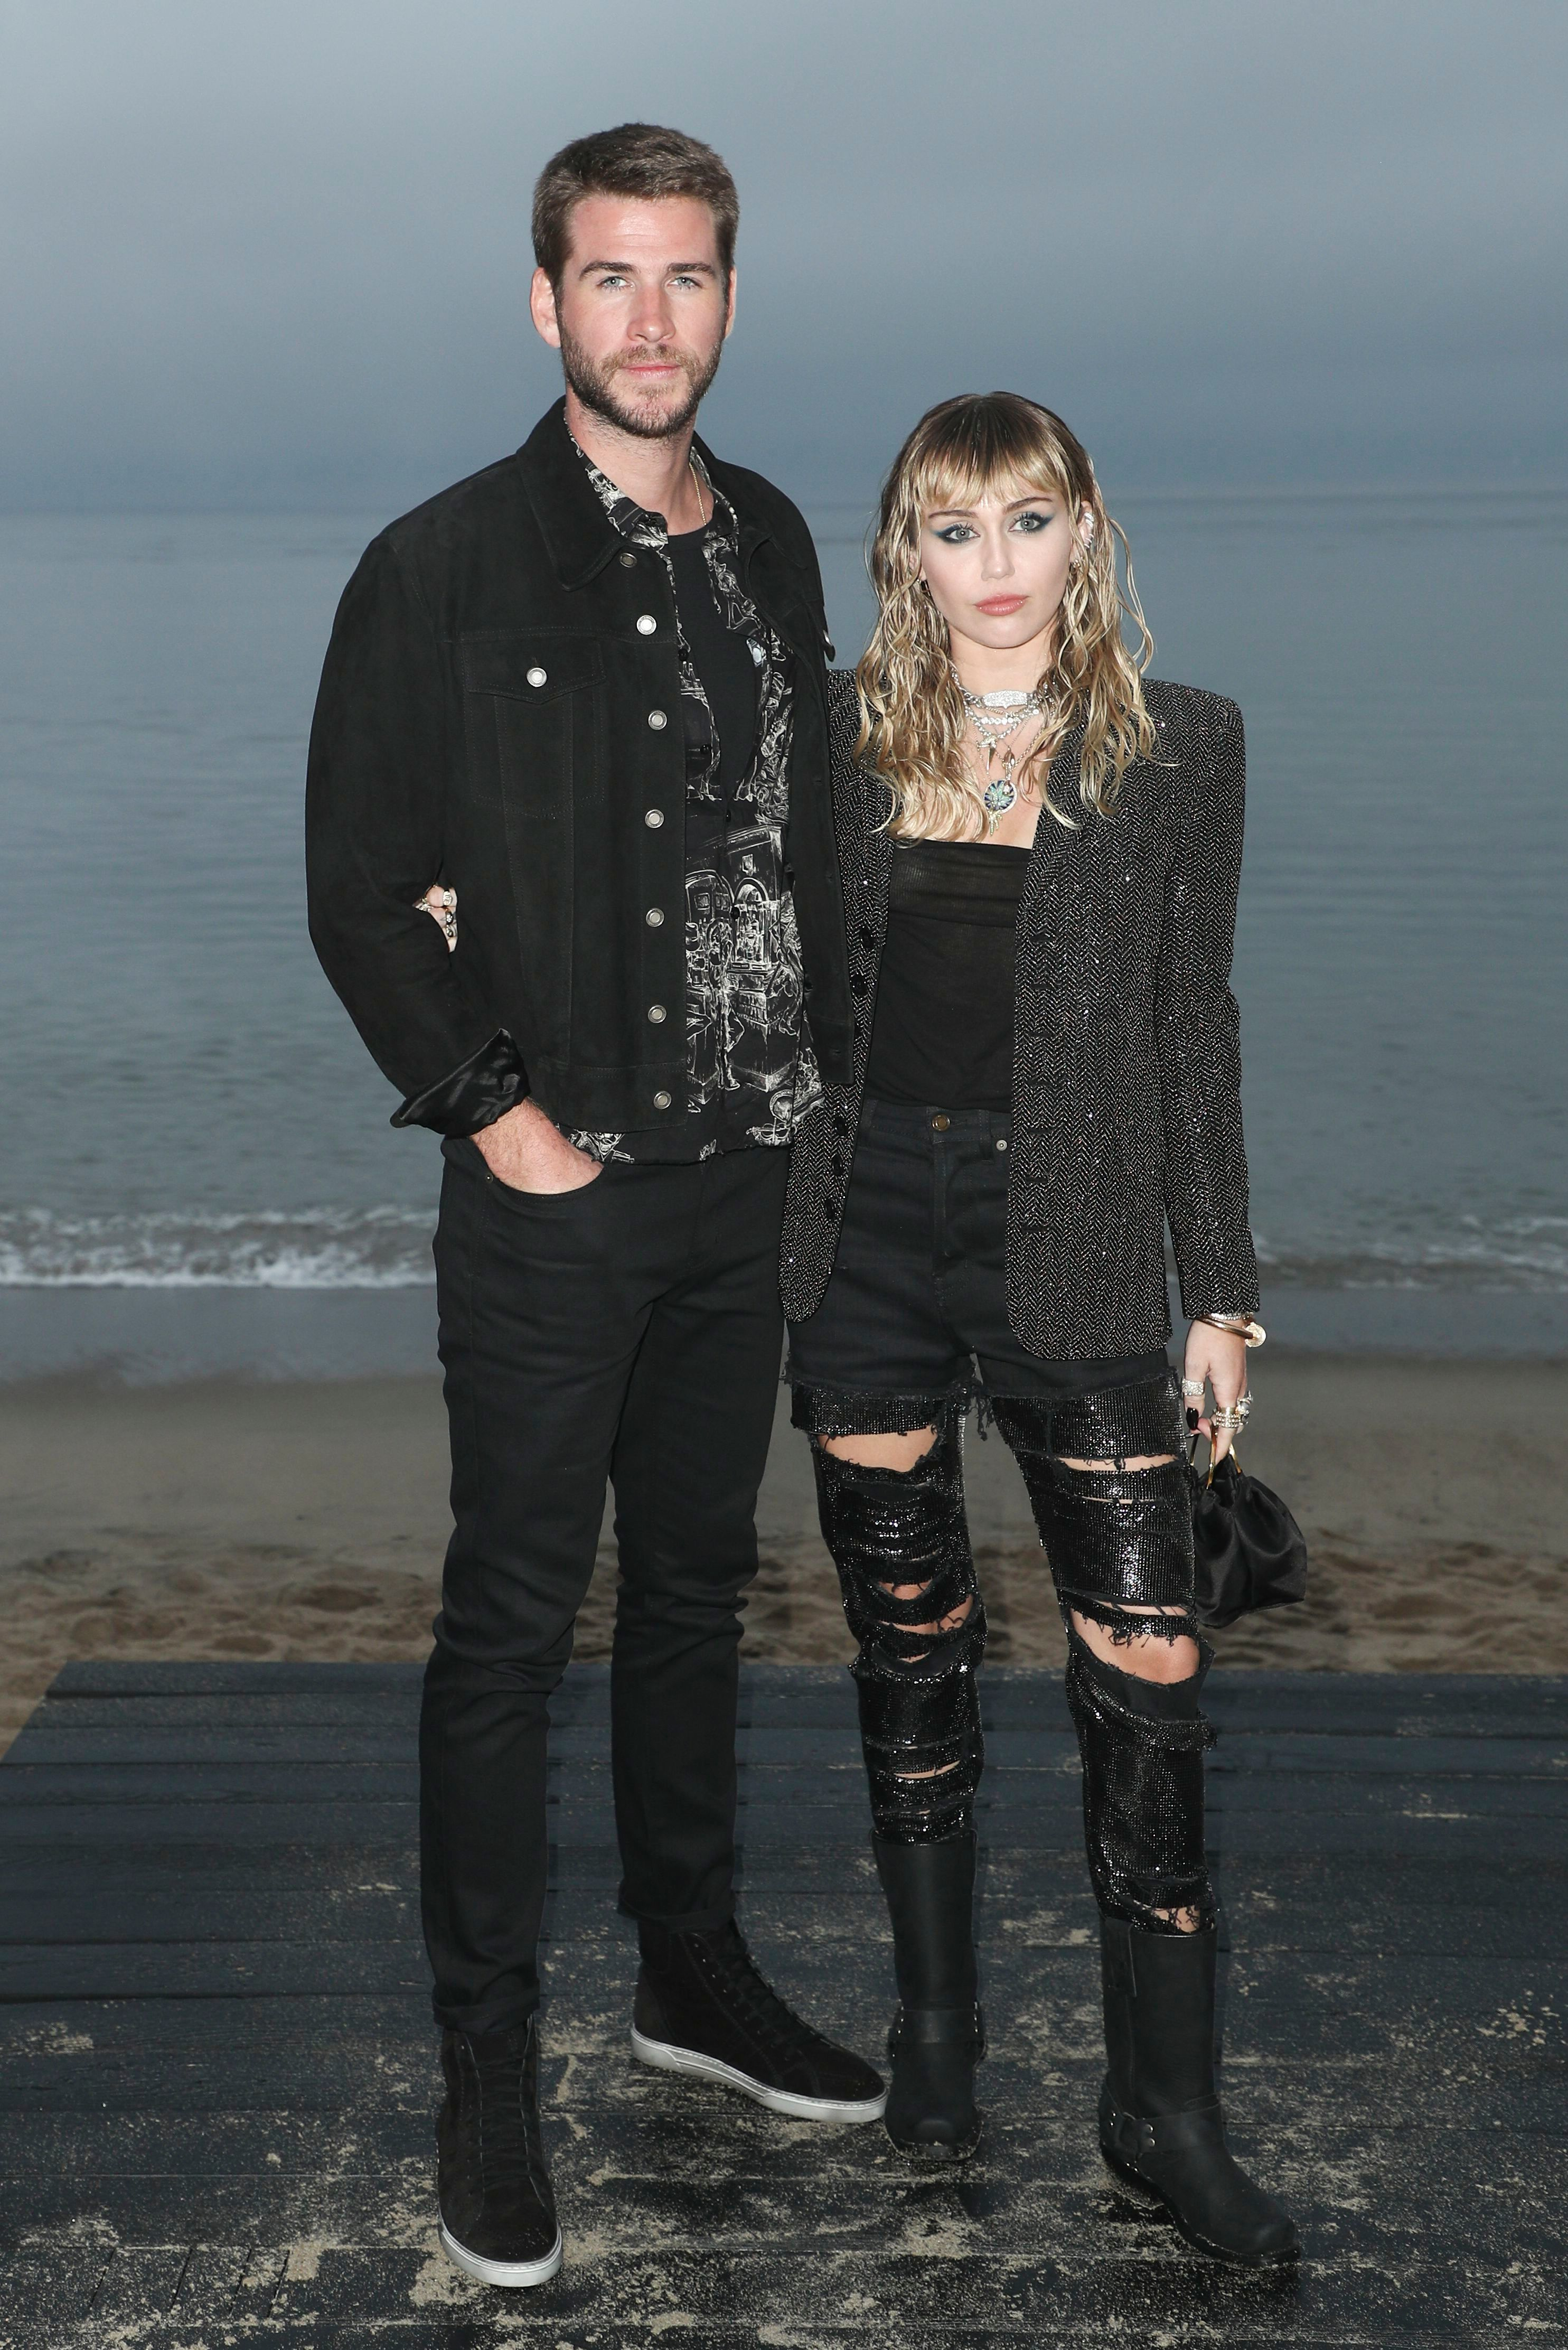 Liam Hemsworth and Miley Cyrus attend the Saint Laurent Show for Spring/Summer 2020 in Los Angeles on June 6, 2019.